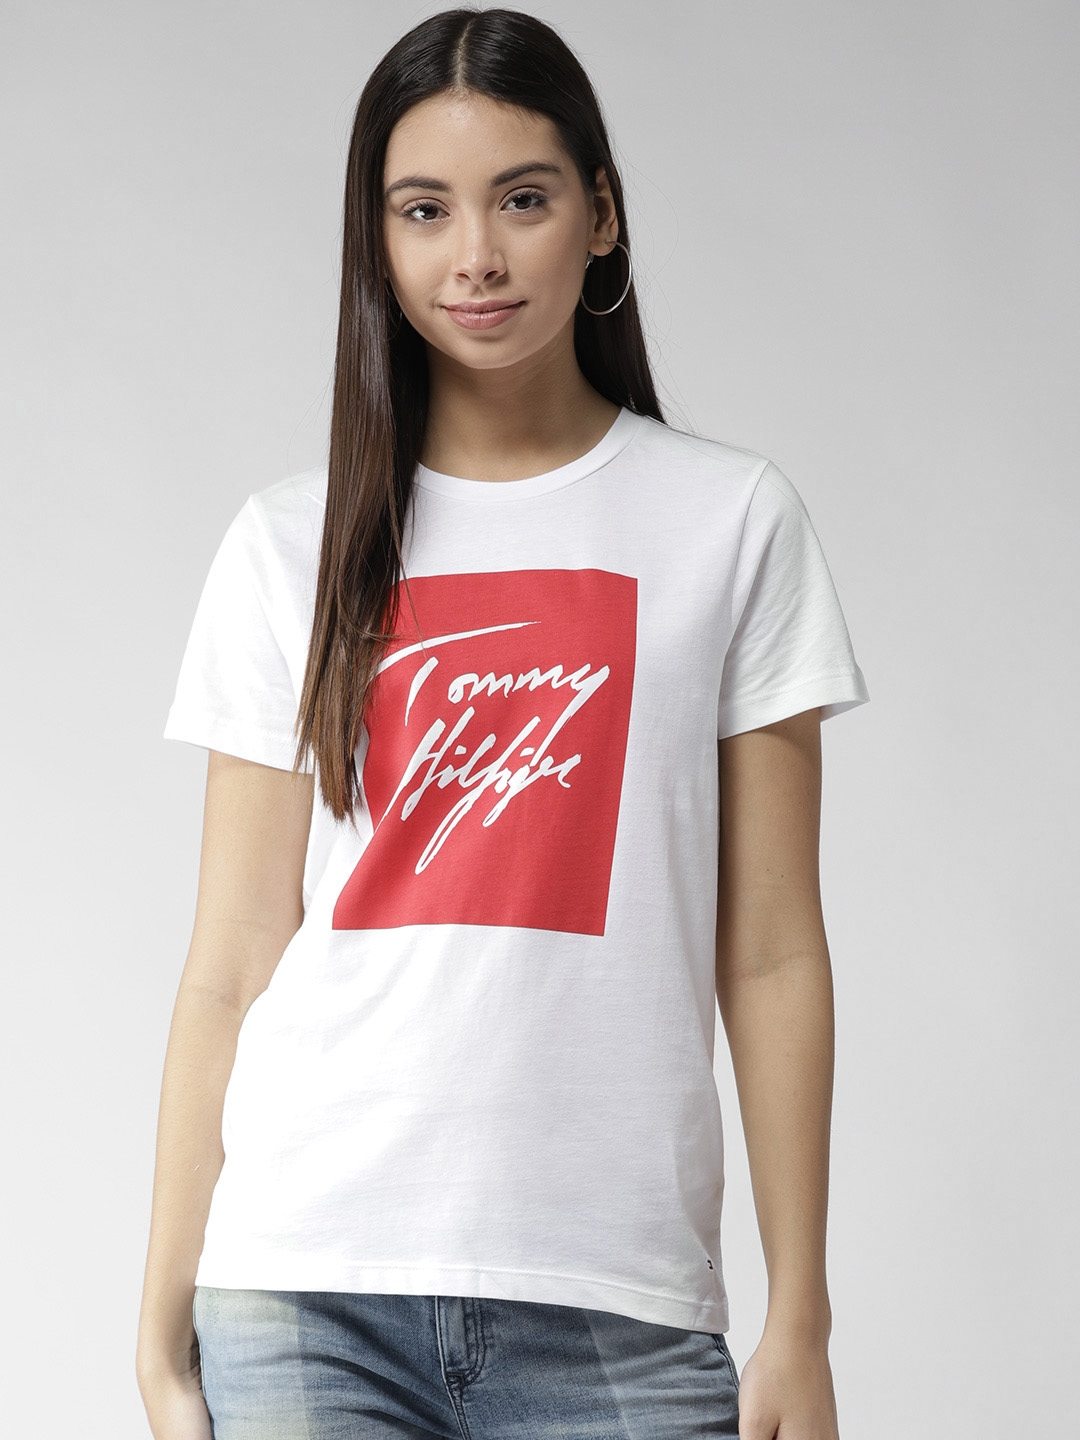 4d96ce98 Buy Tommy Hilfiger Women White & Red Printed Round Neck T Shirt ...